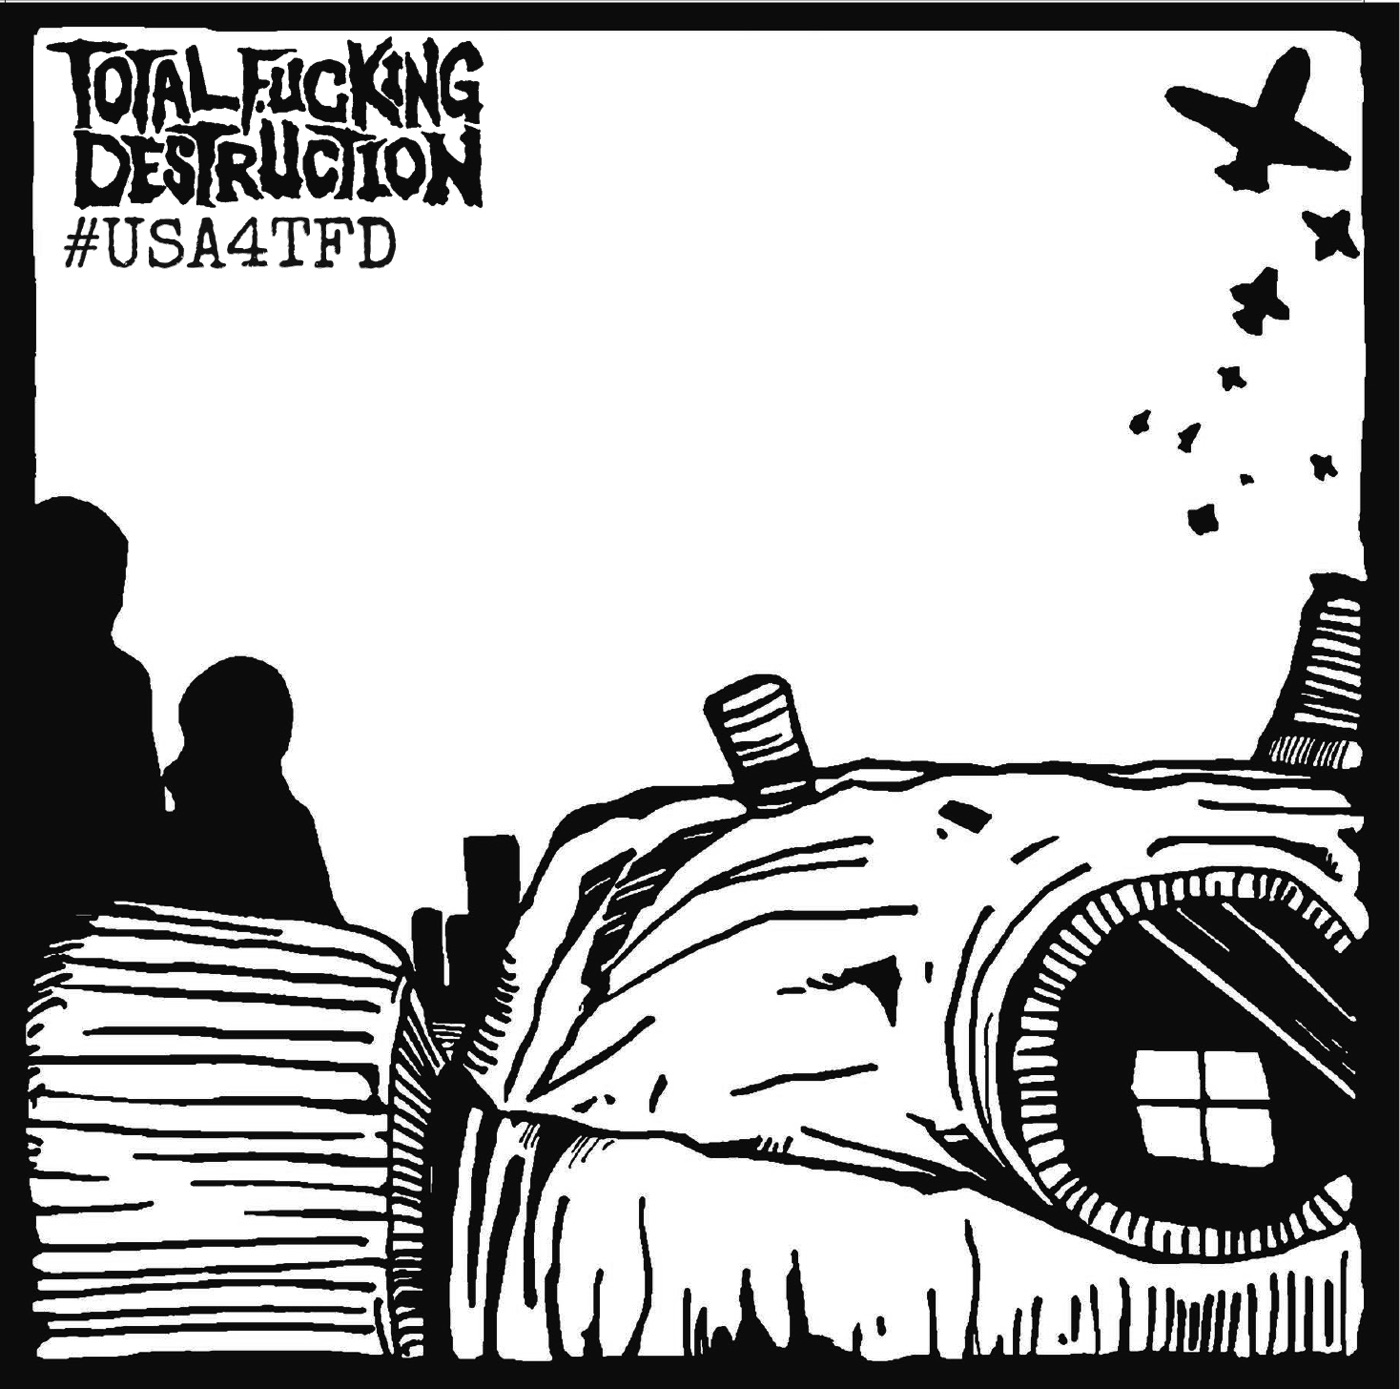 Total Fucking Destruction - #Usa4tfd (2019)